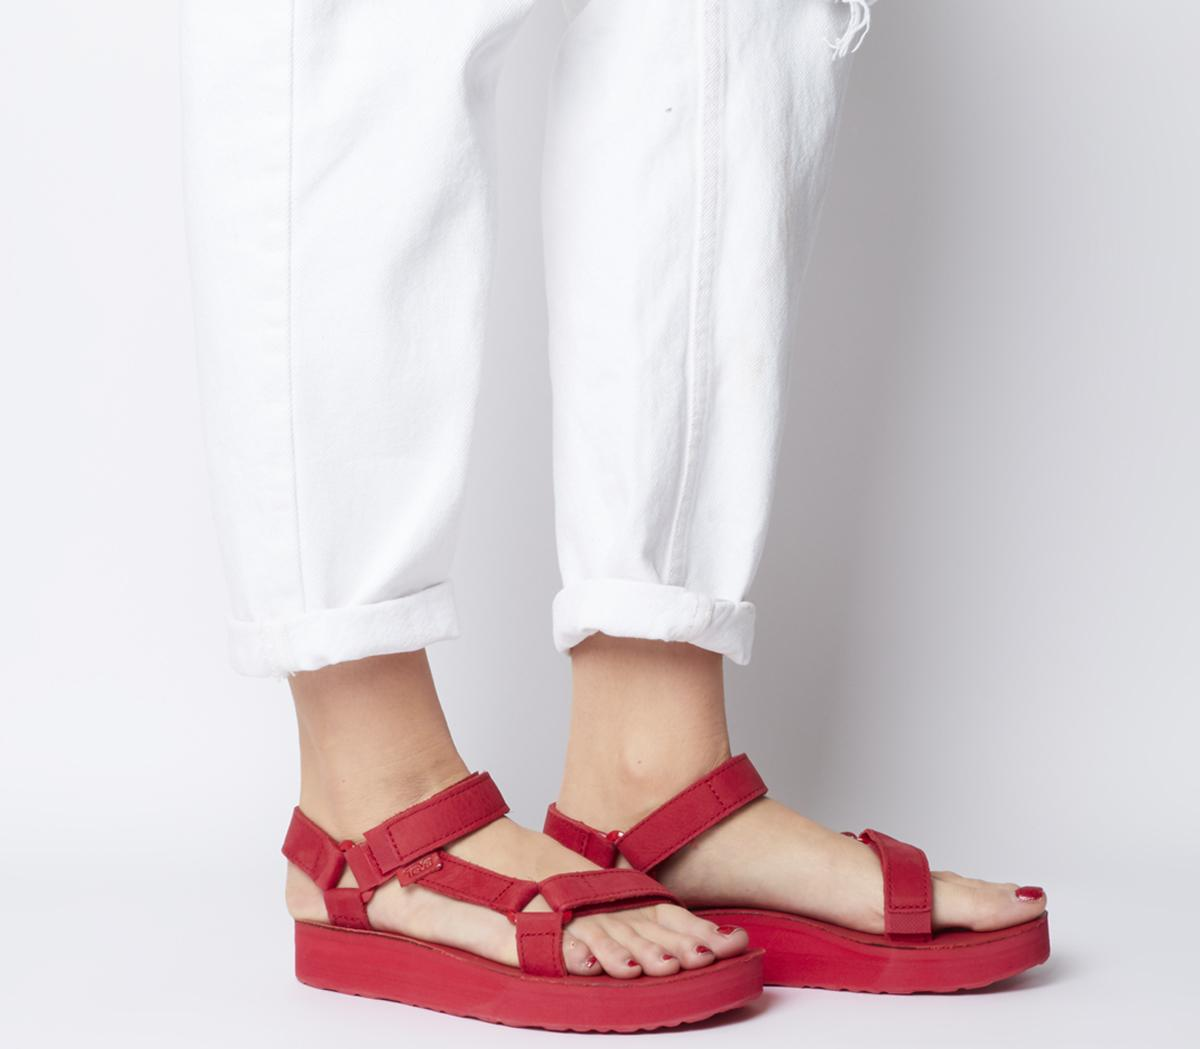 7efaf9d6e Teva Midform Universal Leather Sandals Red - Sandals